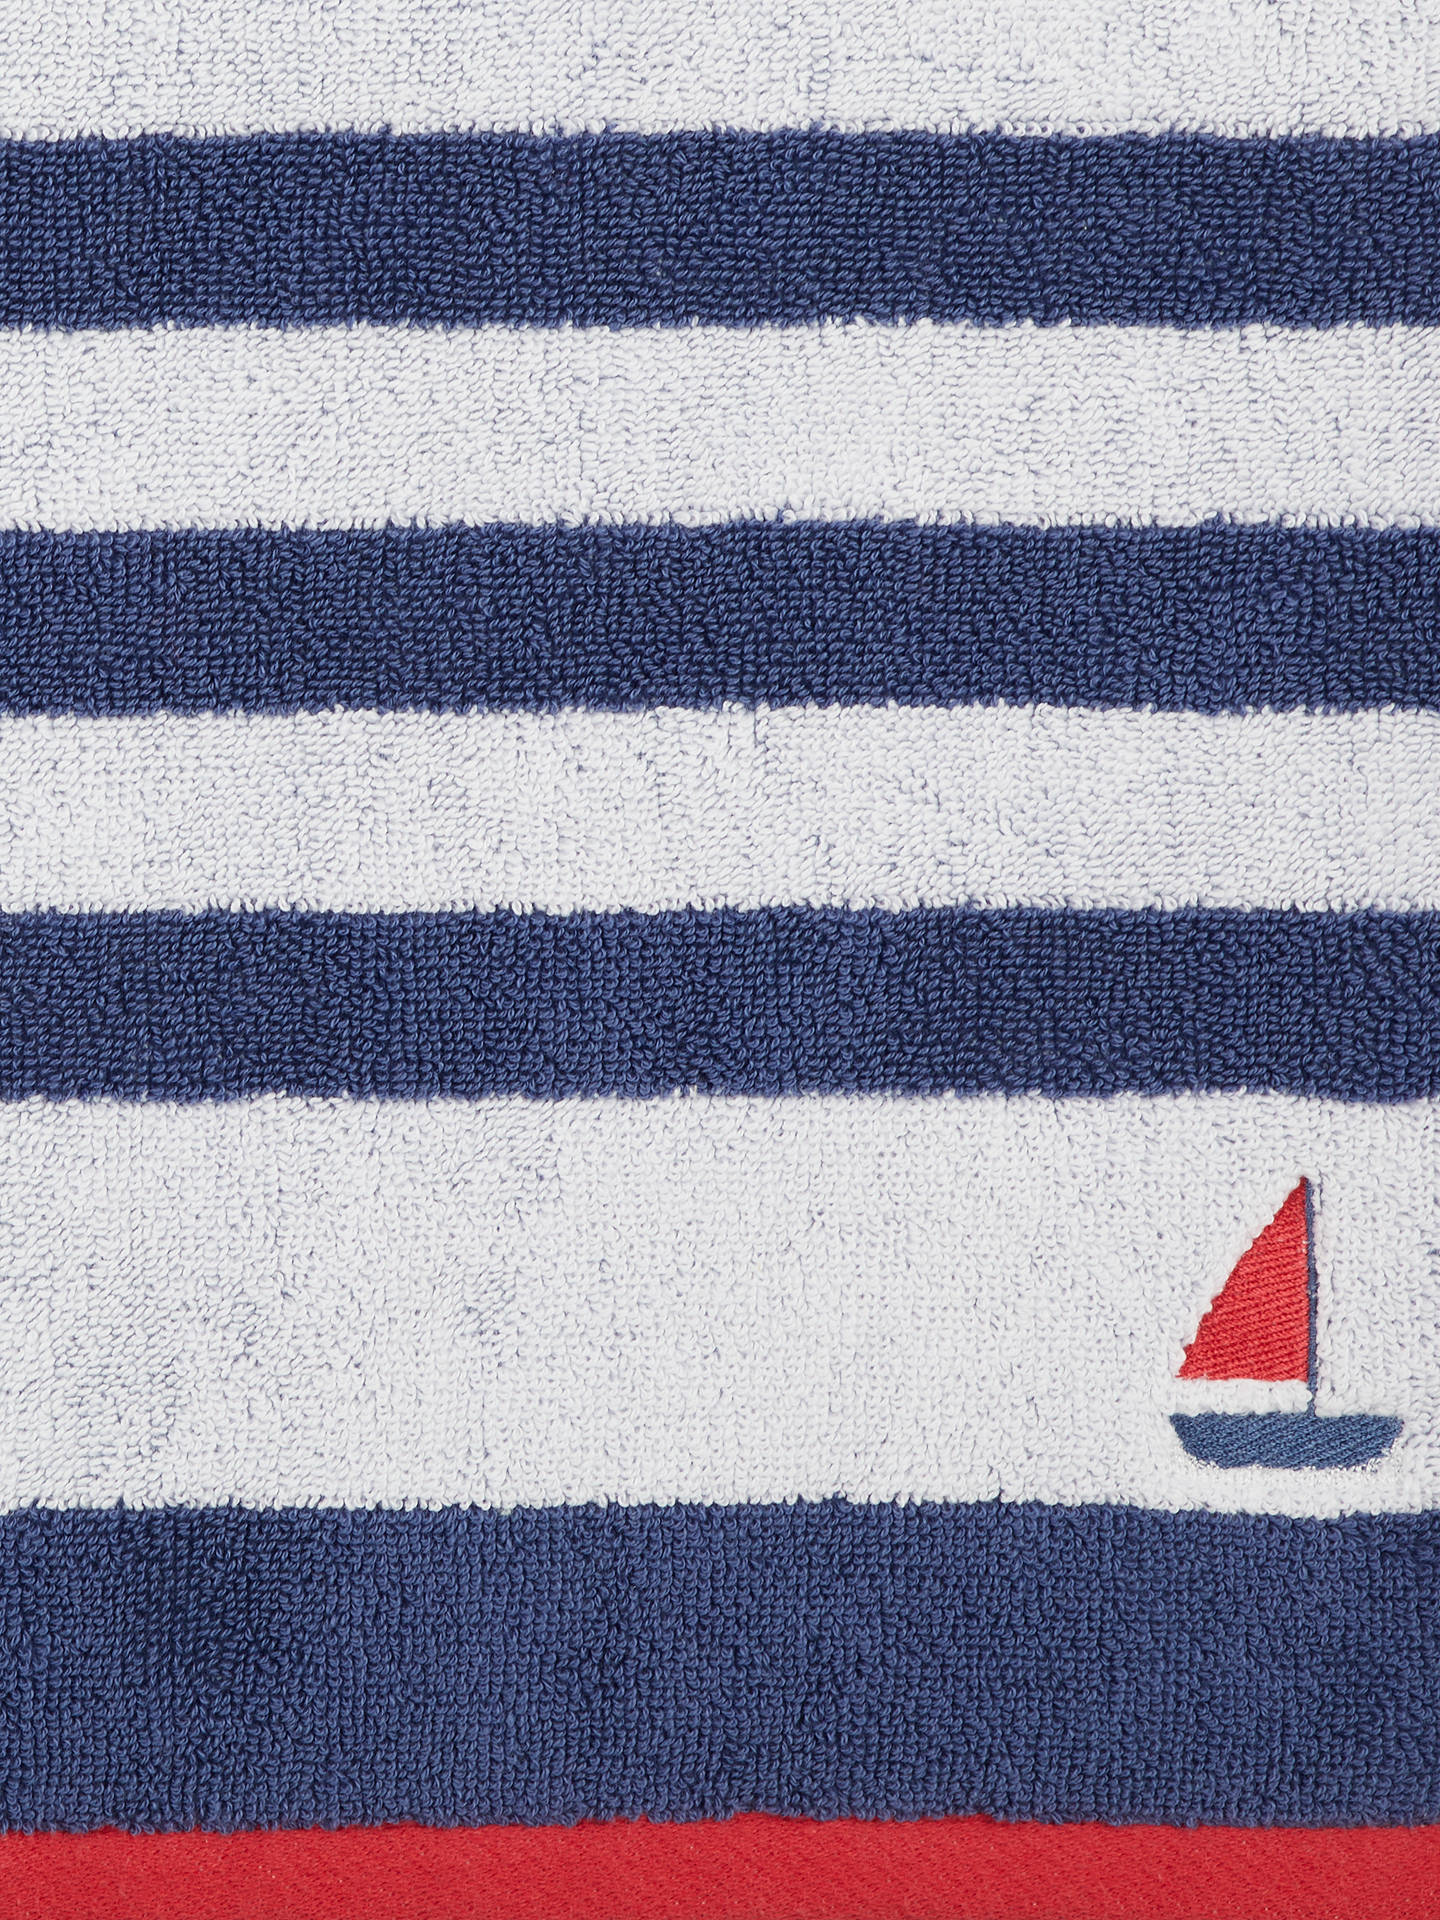 BuyJohn Lewis & Partners Coastal Lost at Sea Face Cloth, Navy Online at johnlewis.com